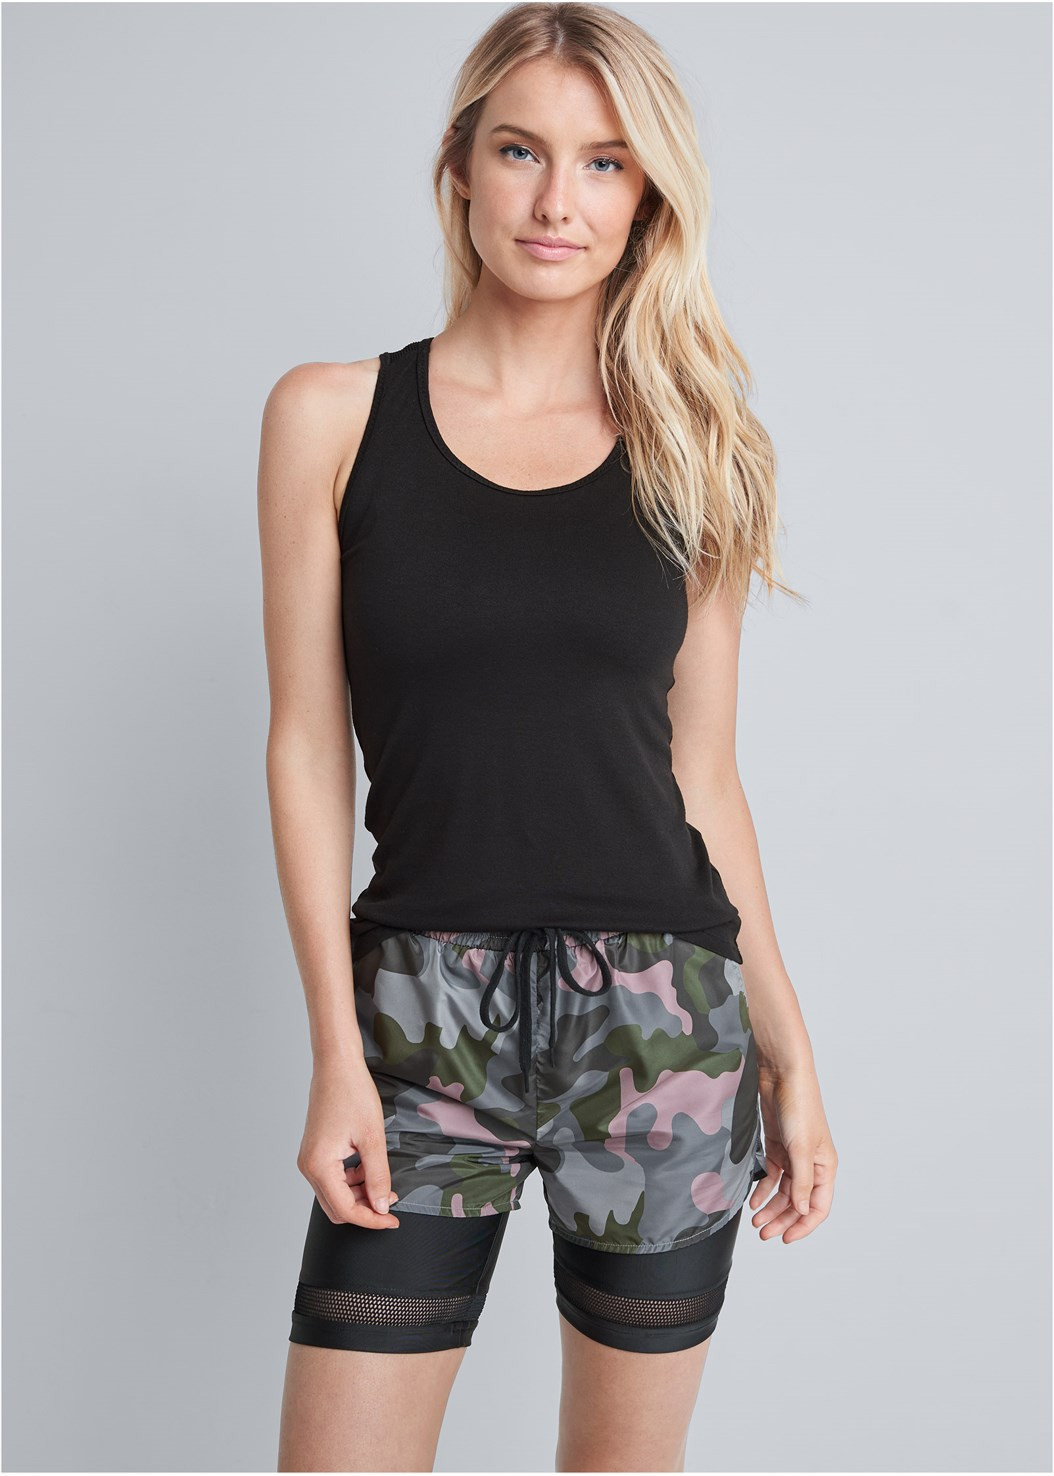 Camo Active Short Set,Lace Up Star Sneakers